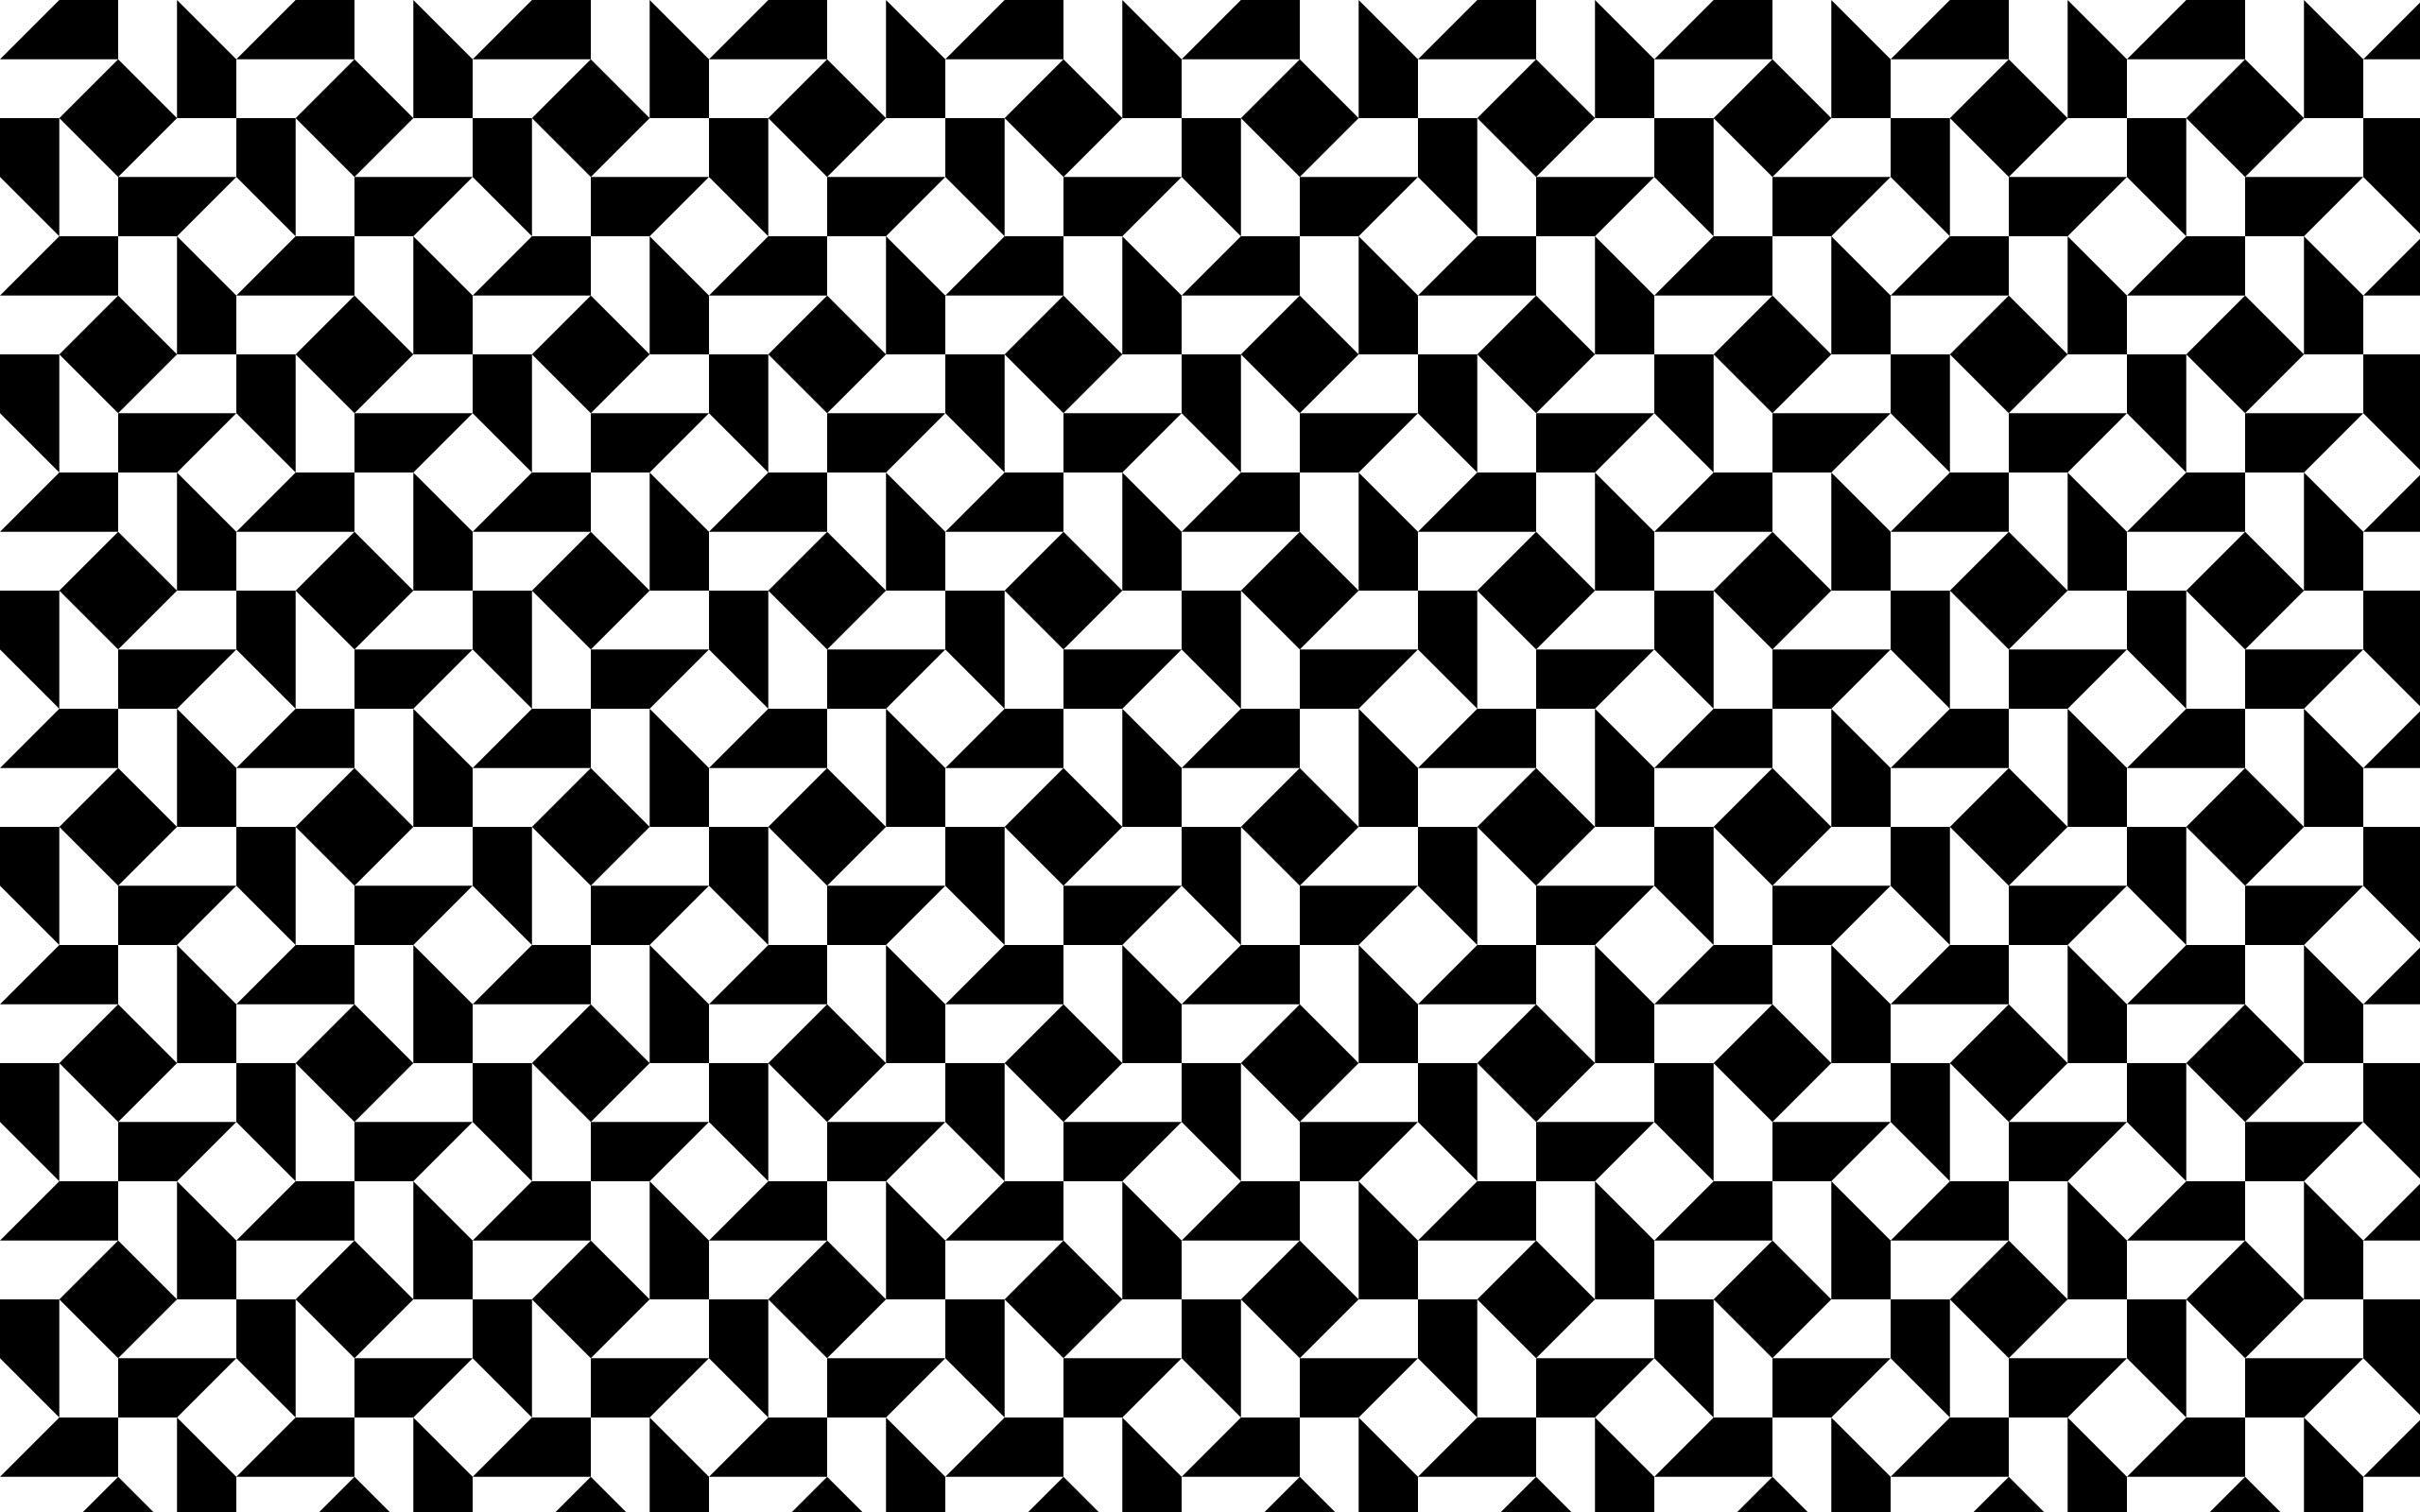 Checkerboard pattern clipart 6 » Clipart Station.